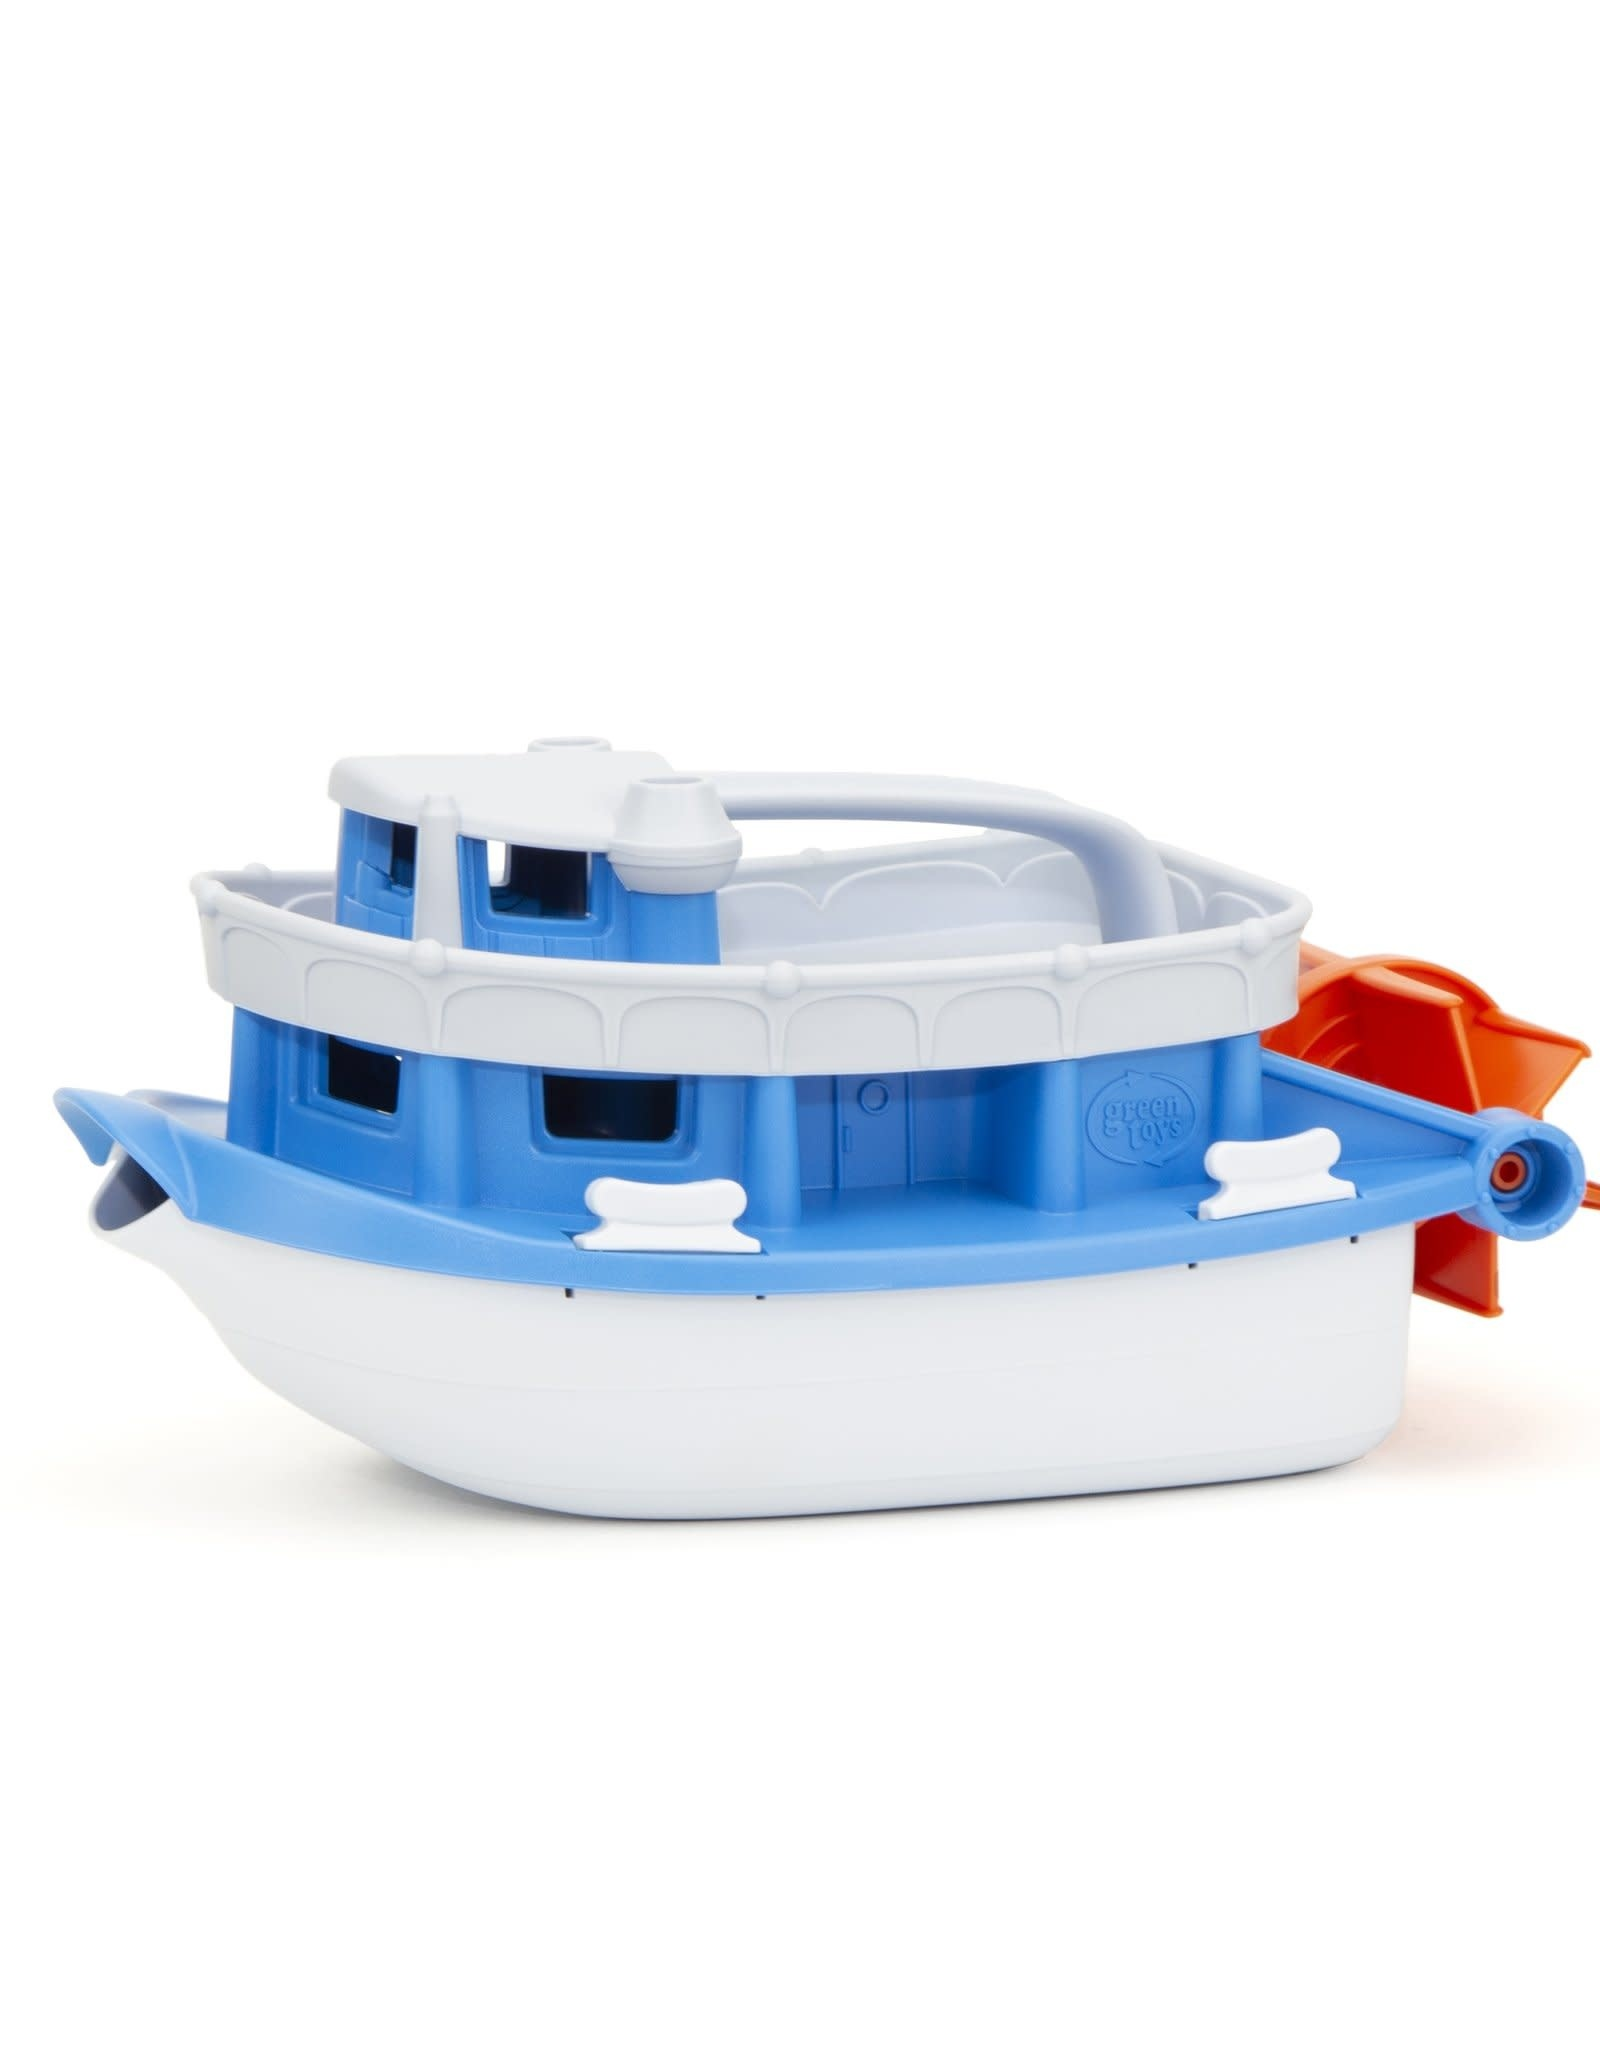 Green Toys Green Toys Paddle Boat